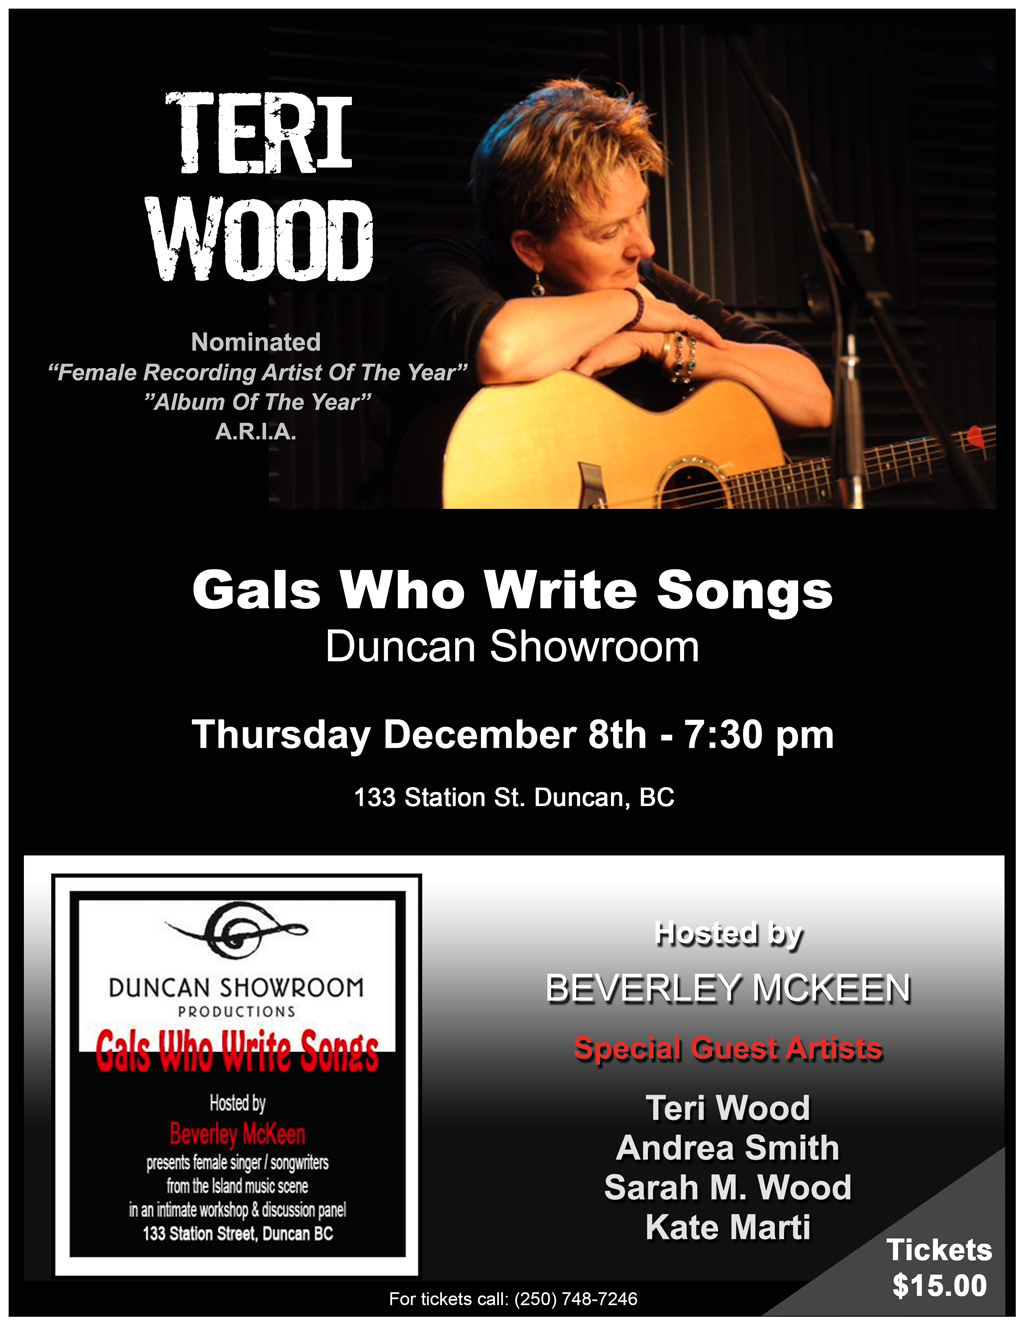 Duncan Showroom Concert featuring Nominated Recording Artist Teri Wood Sold Out